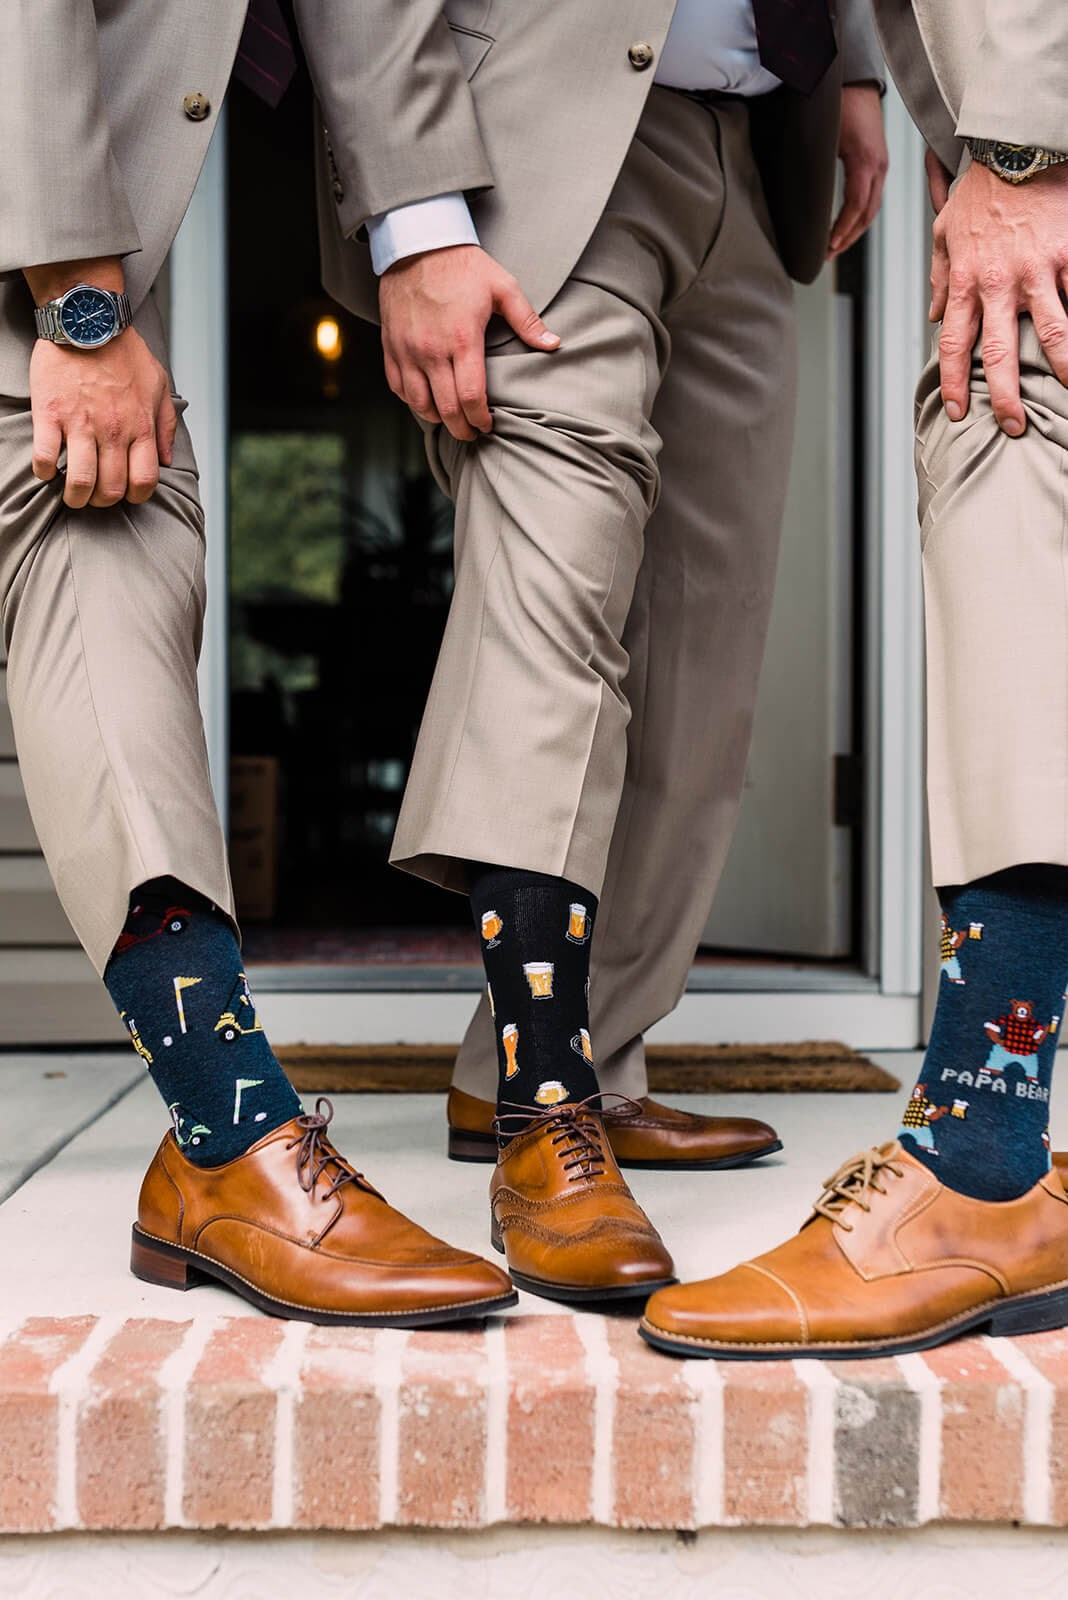 fun socks wedding